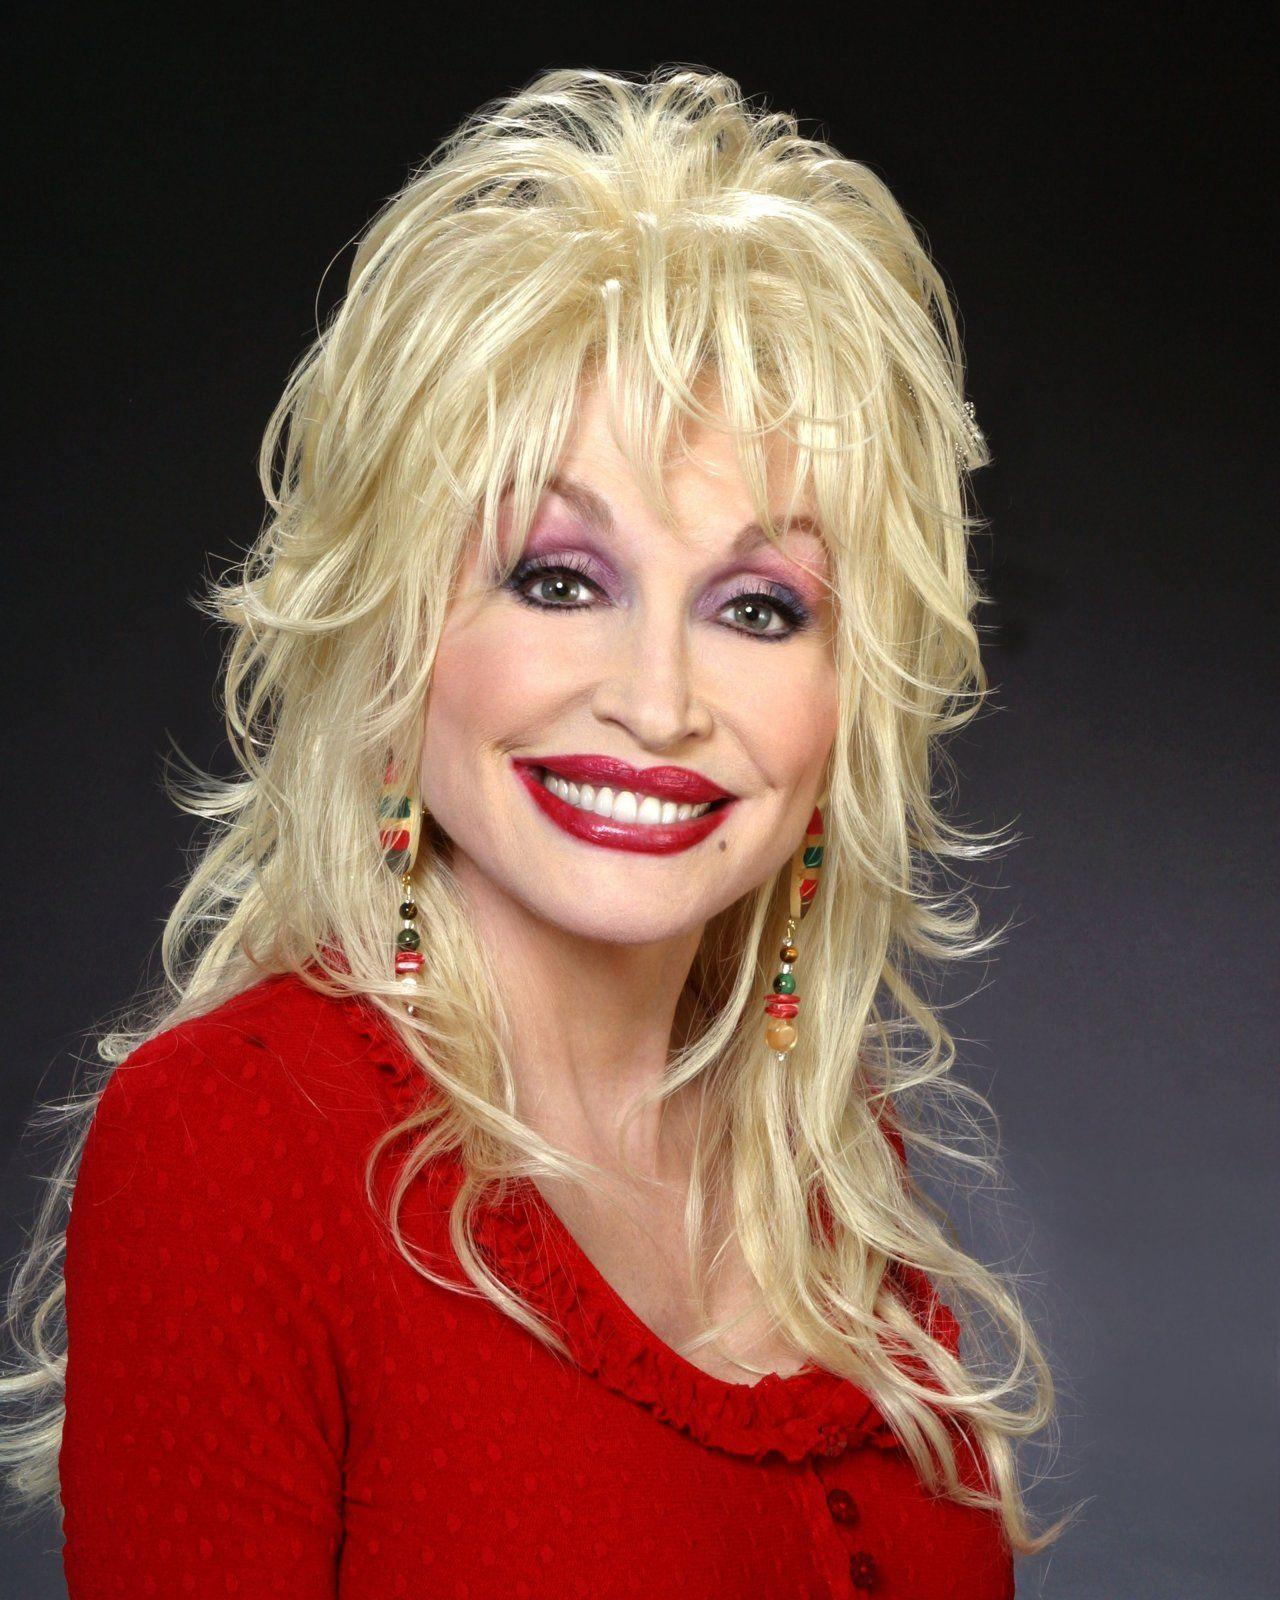 Dolly Parton In Car Crash - Back to Glam : Back to Glam